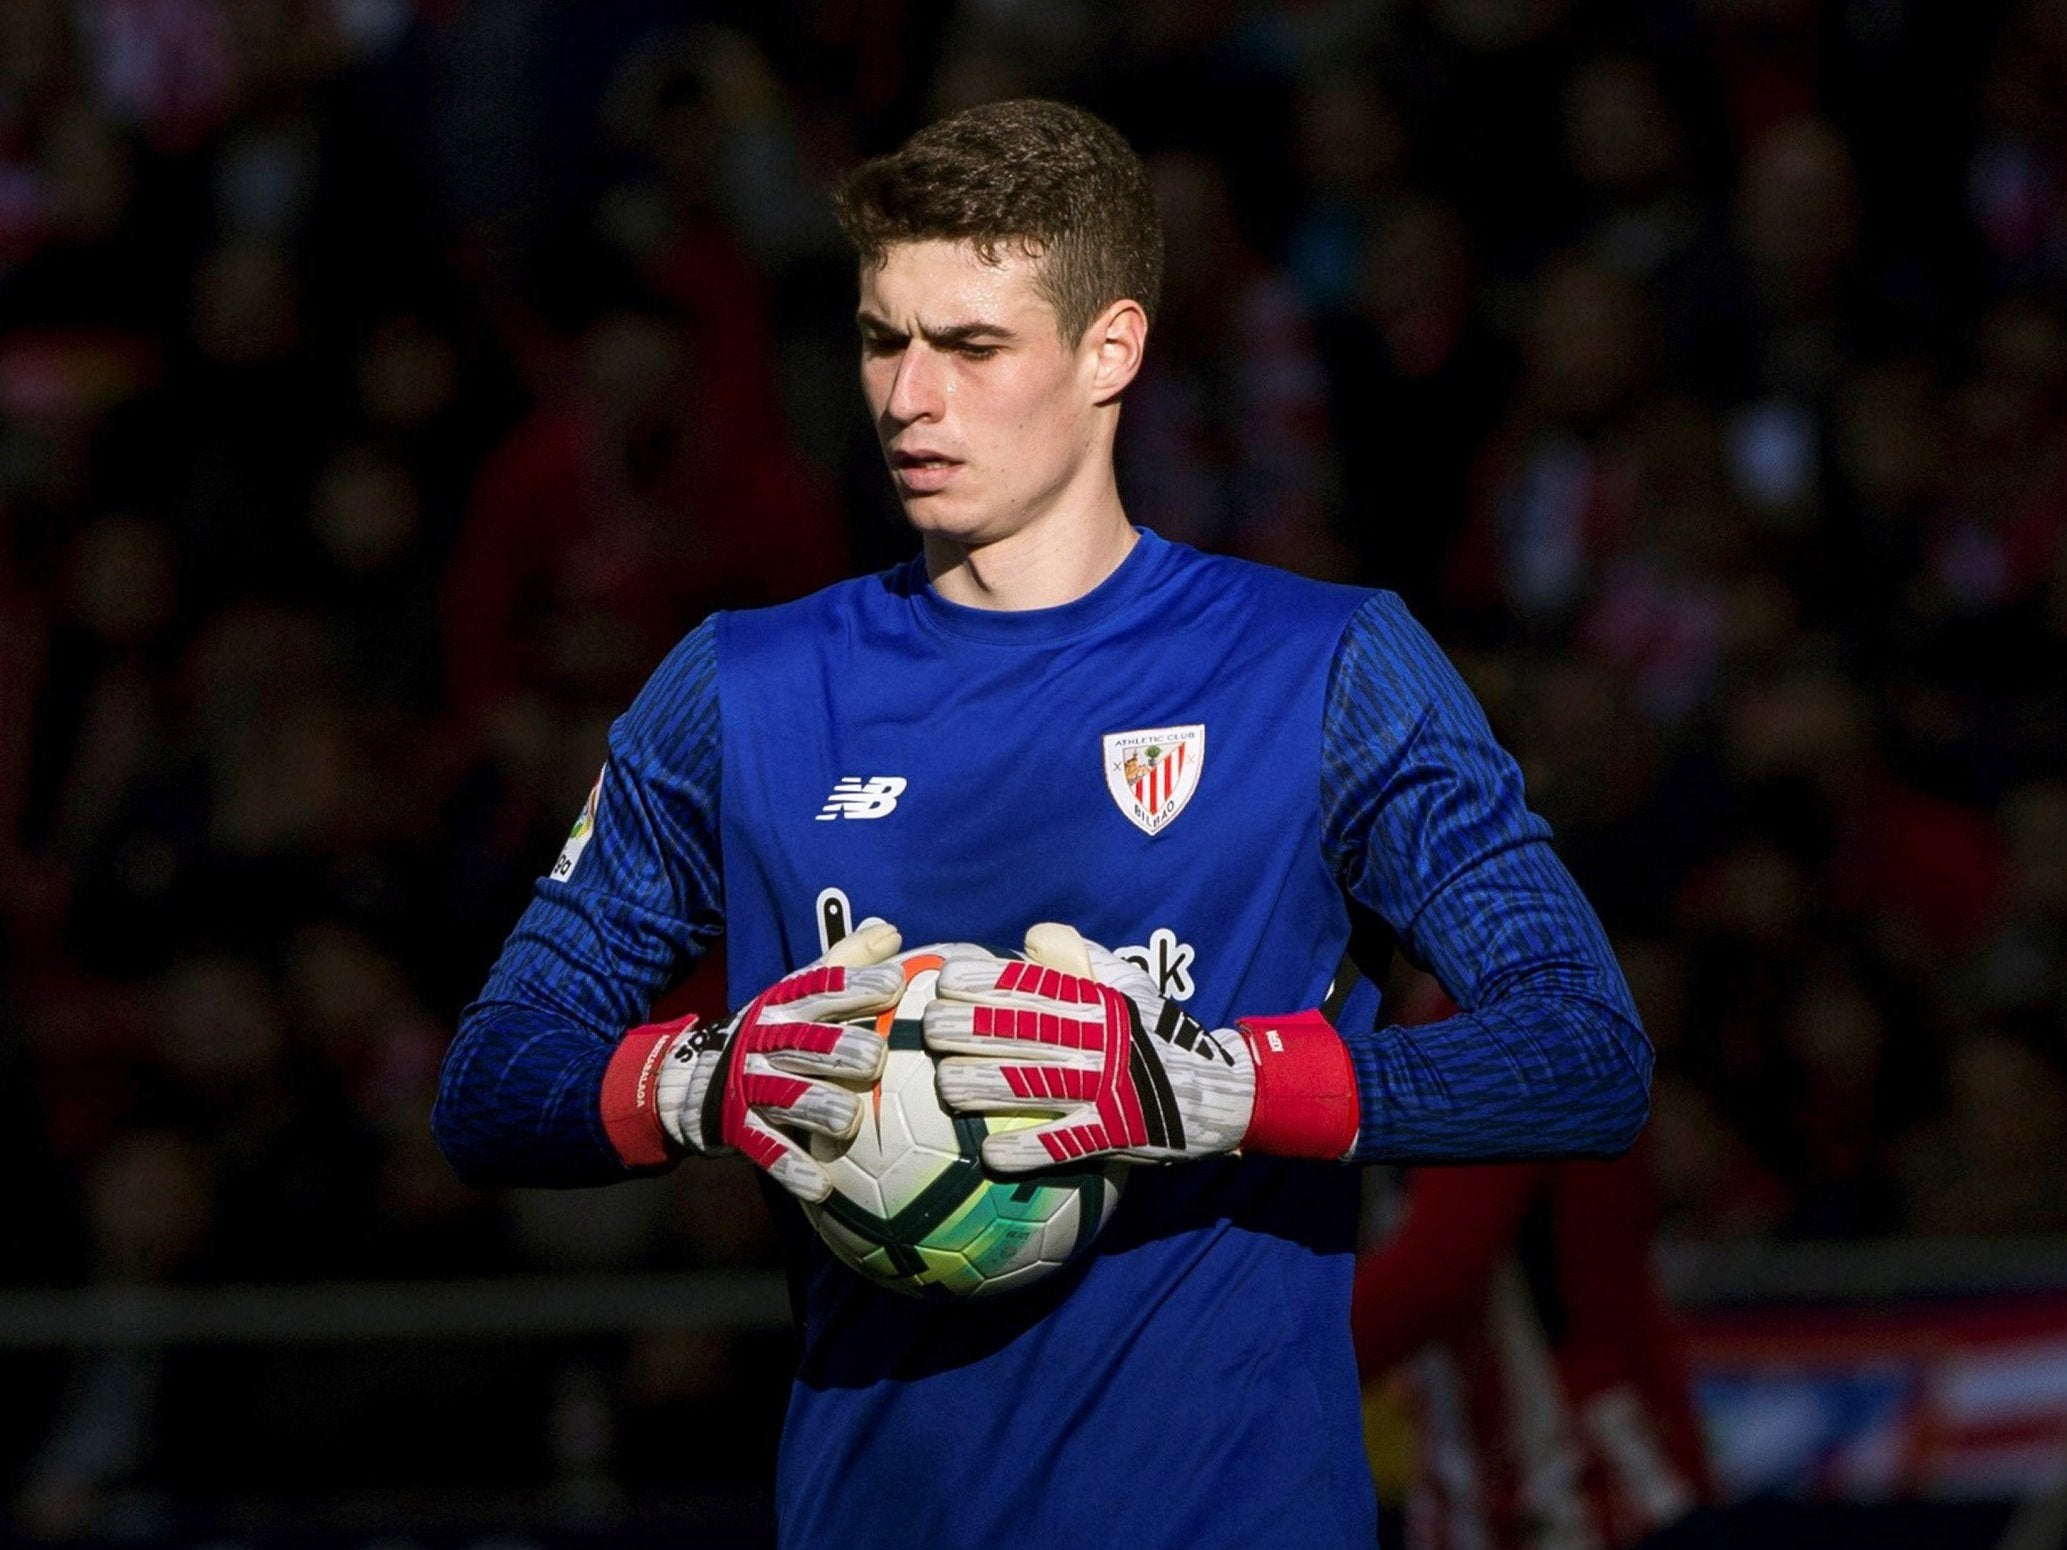 Chelsea transfer news: Athletic Bilbao confirm Kepa Arrizabalaga's release clause triggered ahead of world-record move